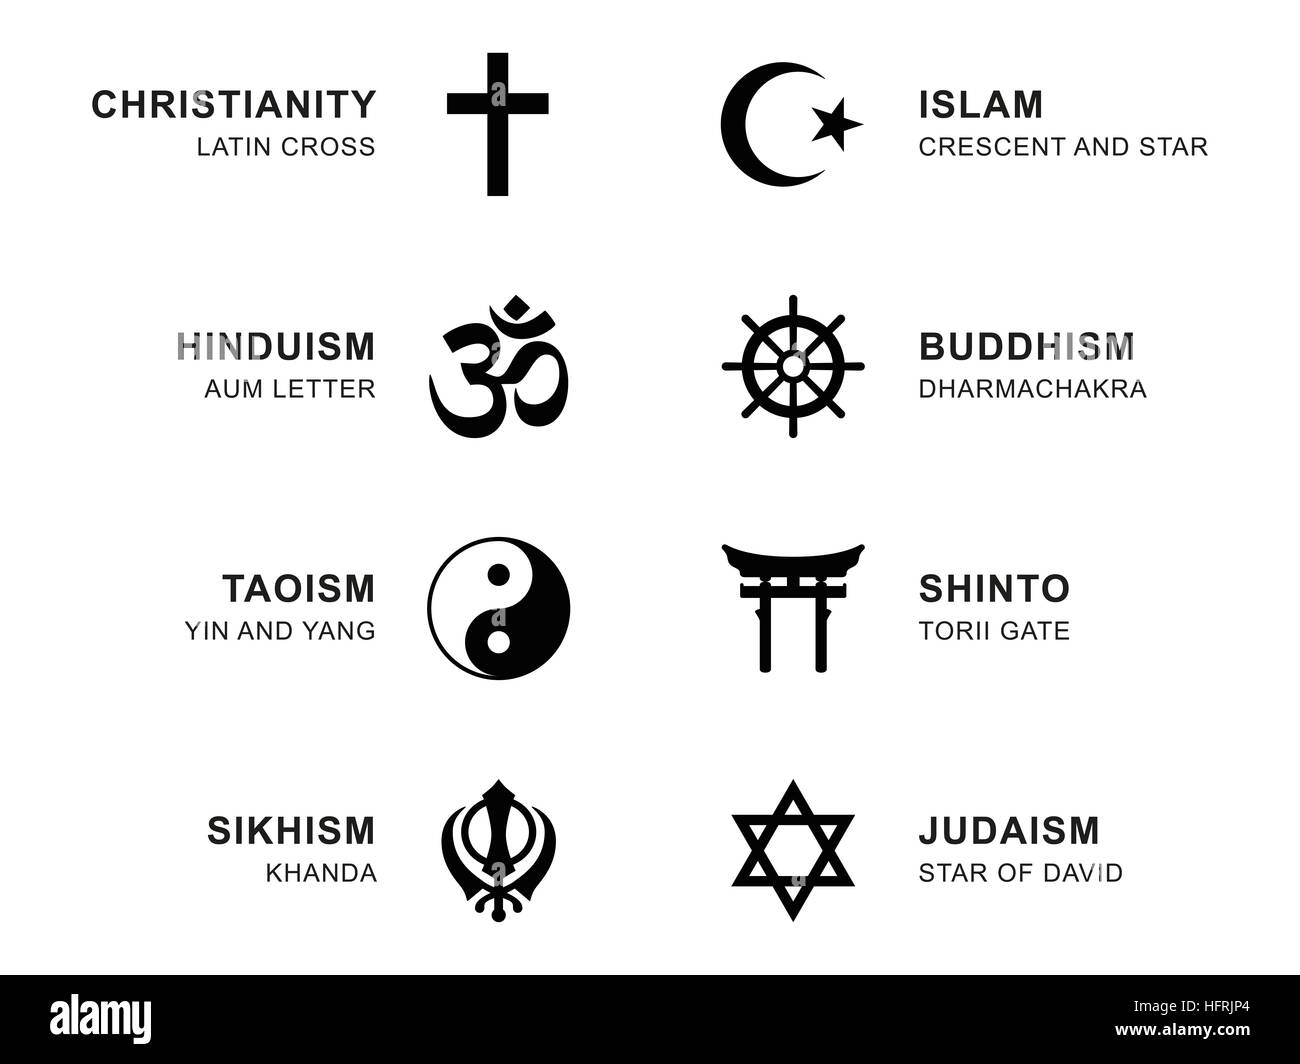 comparing taoism hinduism and shinto religions essay By comparing the two religions essays related to buddhism and hinduism: compare and contrast some of taoism, confucianism, and hinduism believe in.